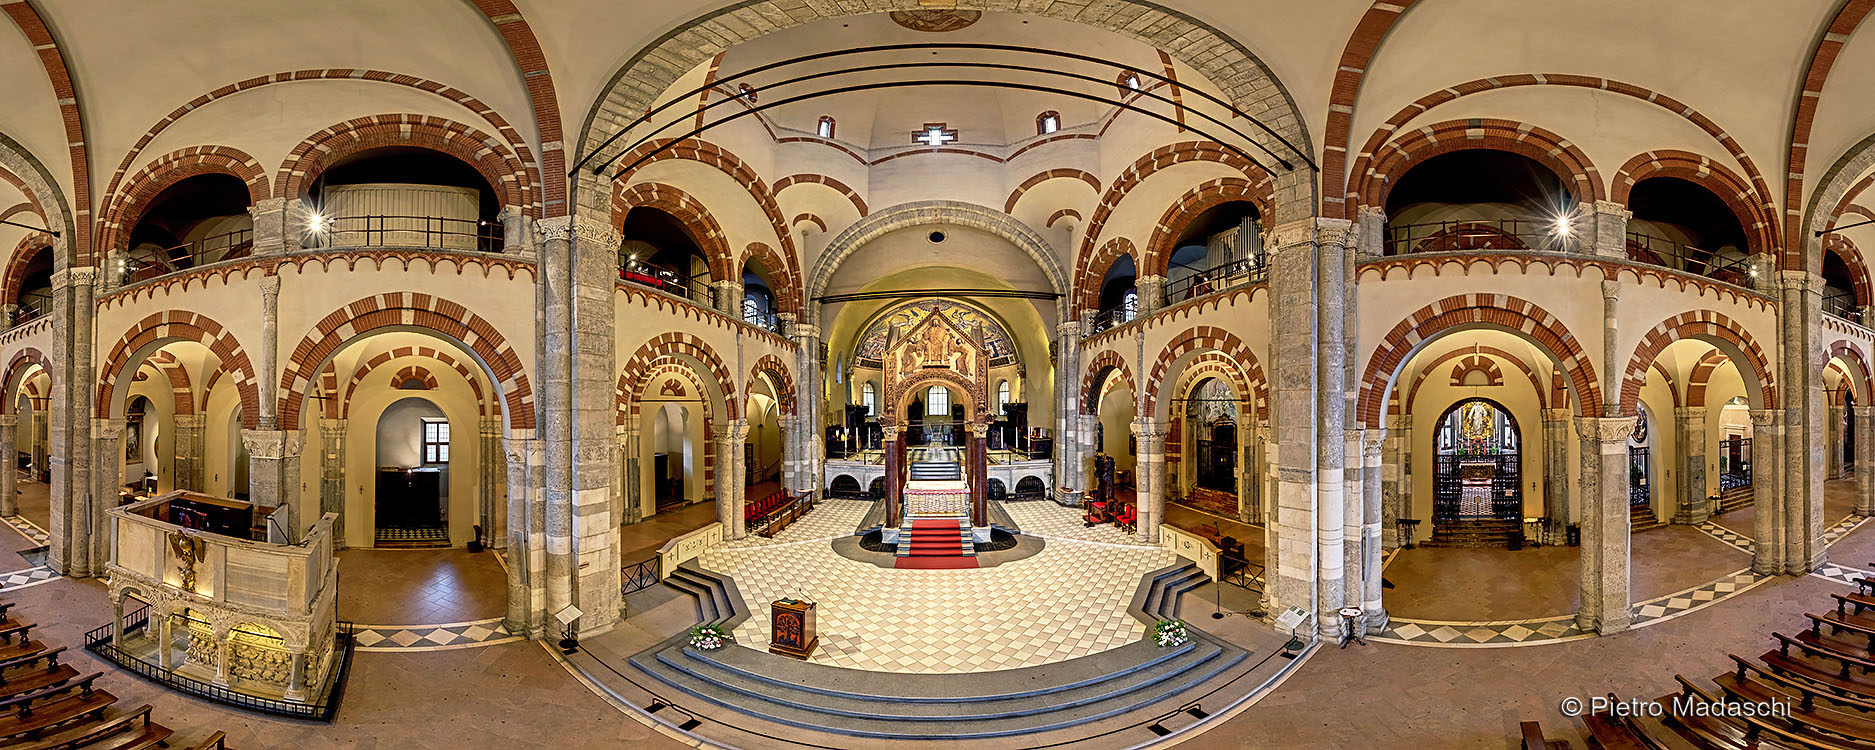 The Basilica of St Ambrose: the Romanesque interior and the matroneum